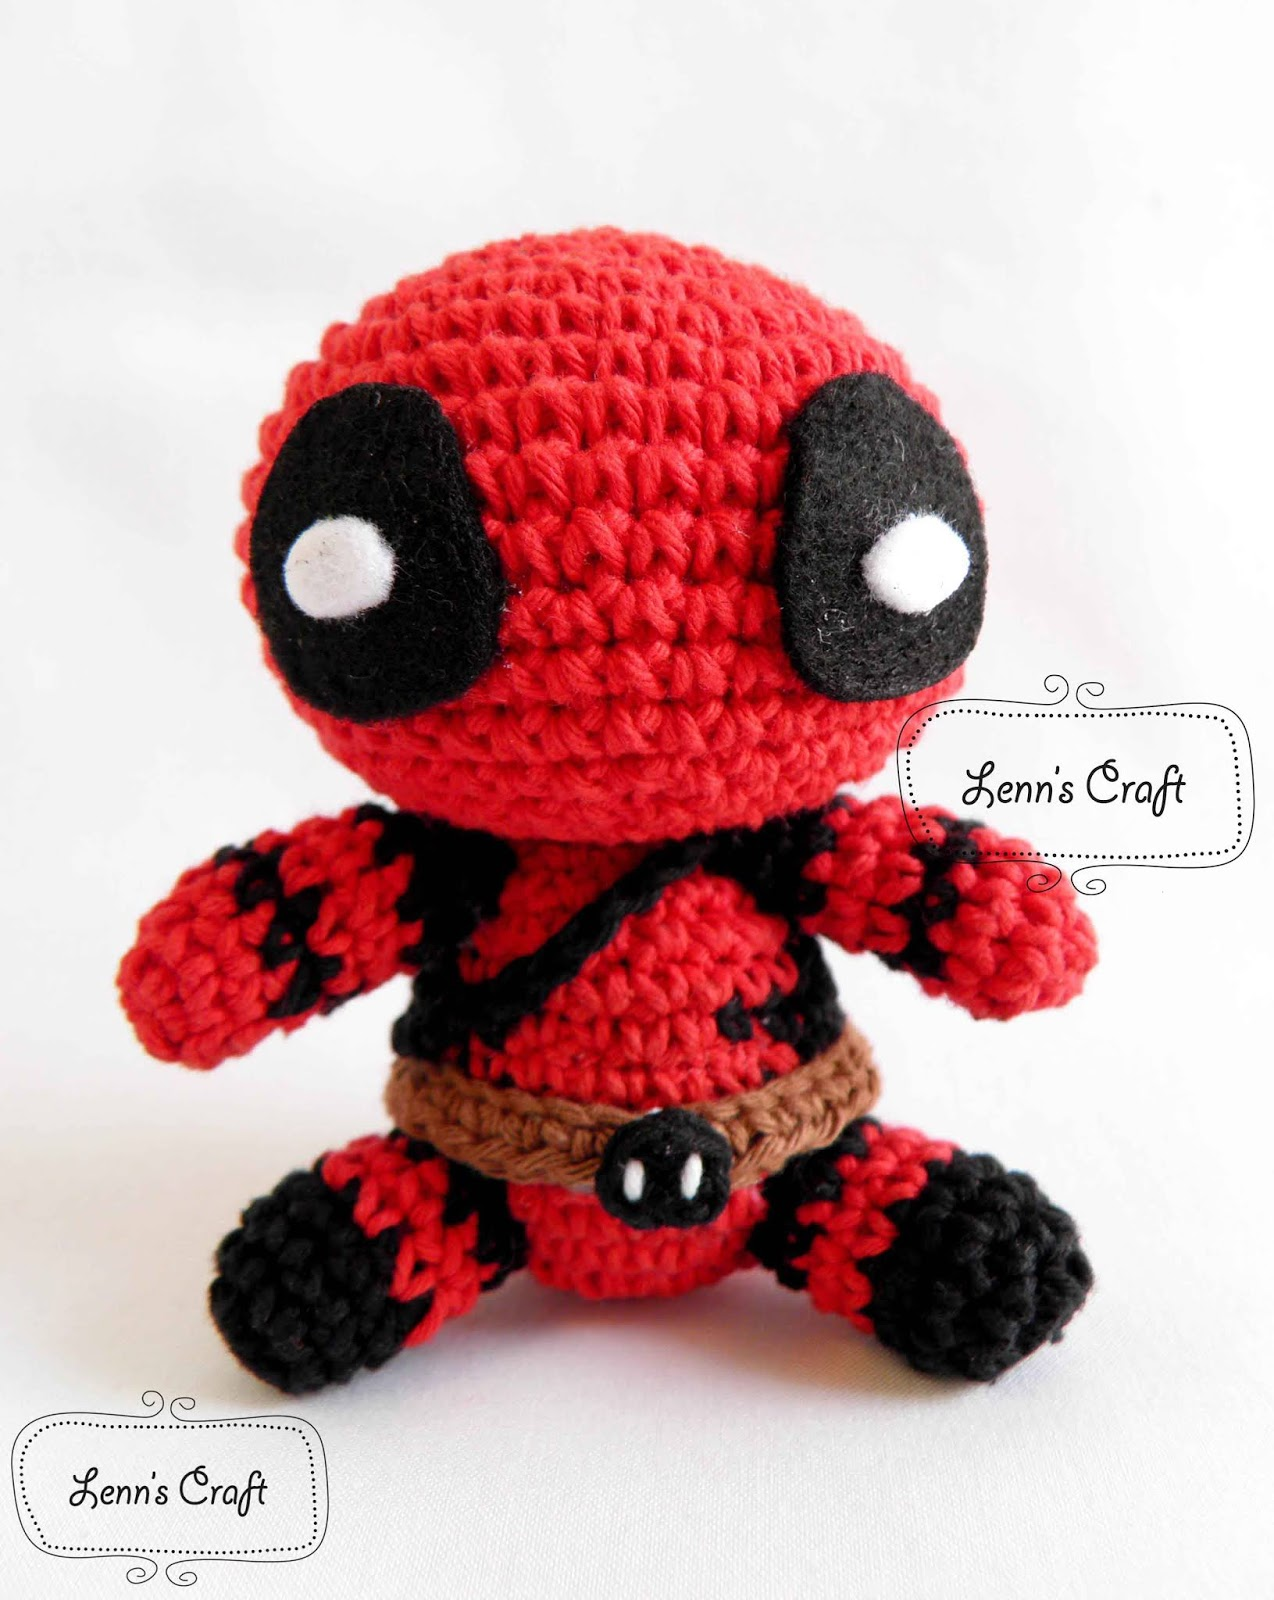 crochet toy Amigurumi spiderman toys Spiderman toys gift for baby ... | 1600x1274